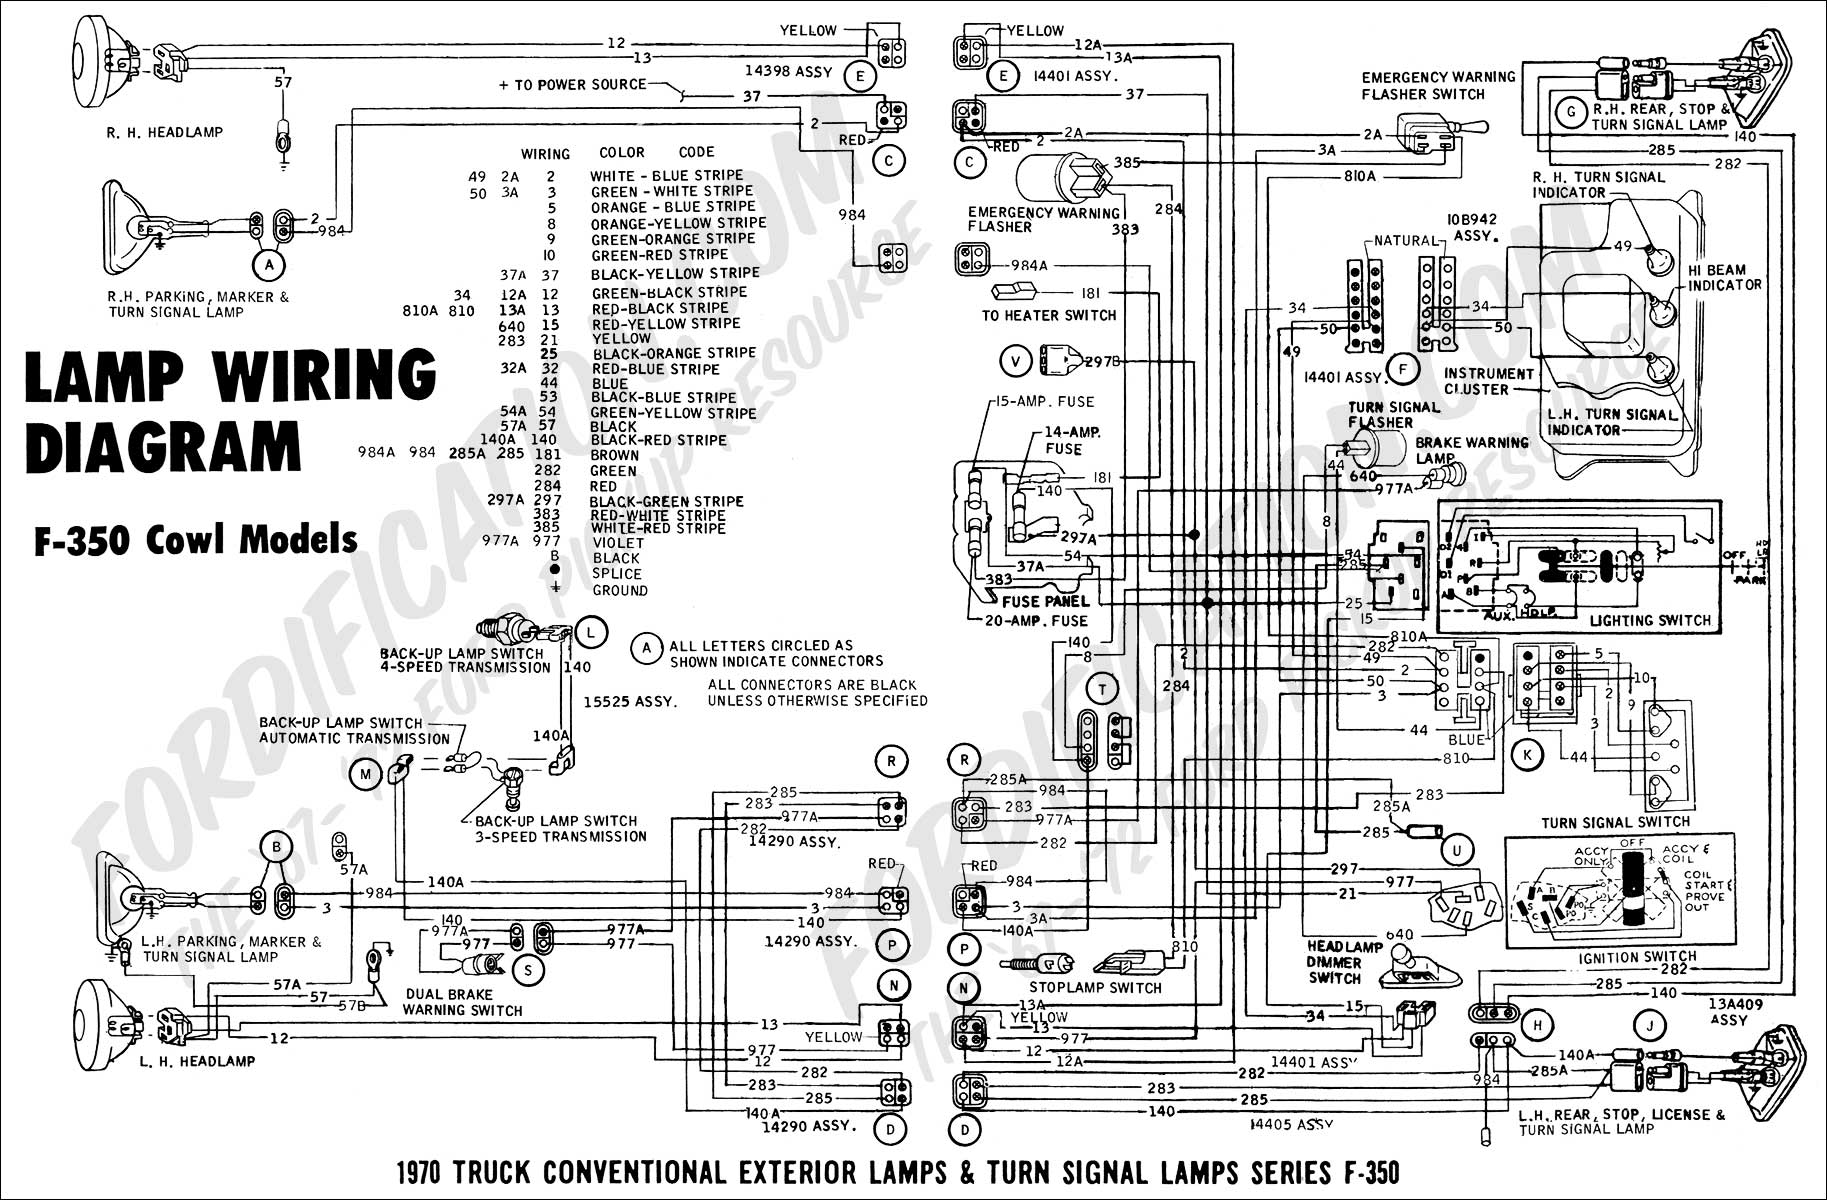 1996 ford f350 tail light wiring diagram 1996 auto wiring wiring diagram for 1996 f250 the wiring diagram